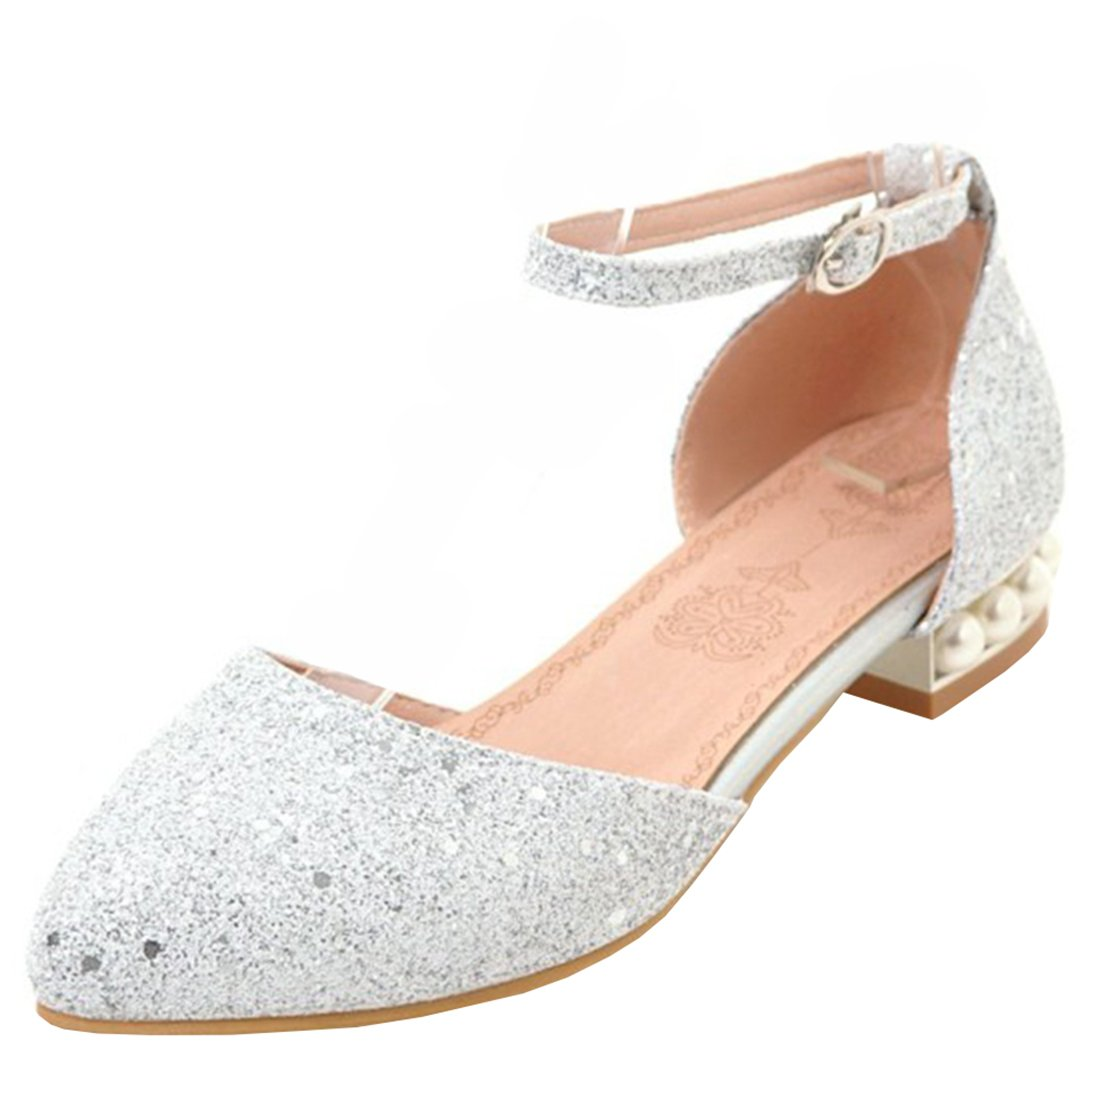 Atyche Bride Femme Cheville Silber Femme B012OBQCEK Silber be18341 - tbfe.space